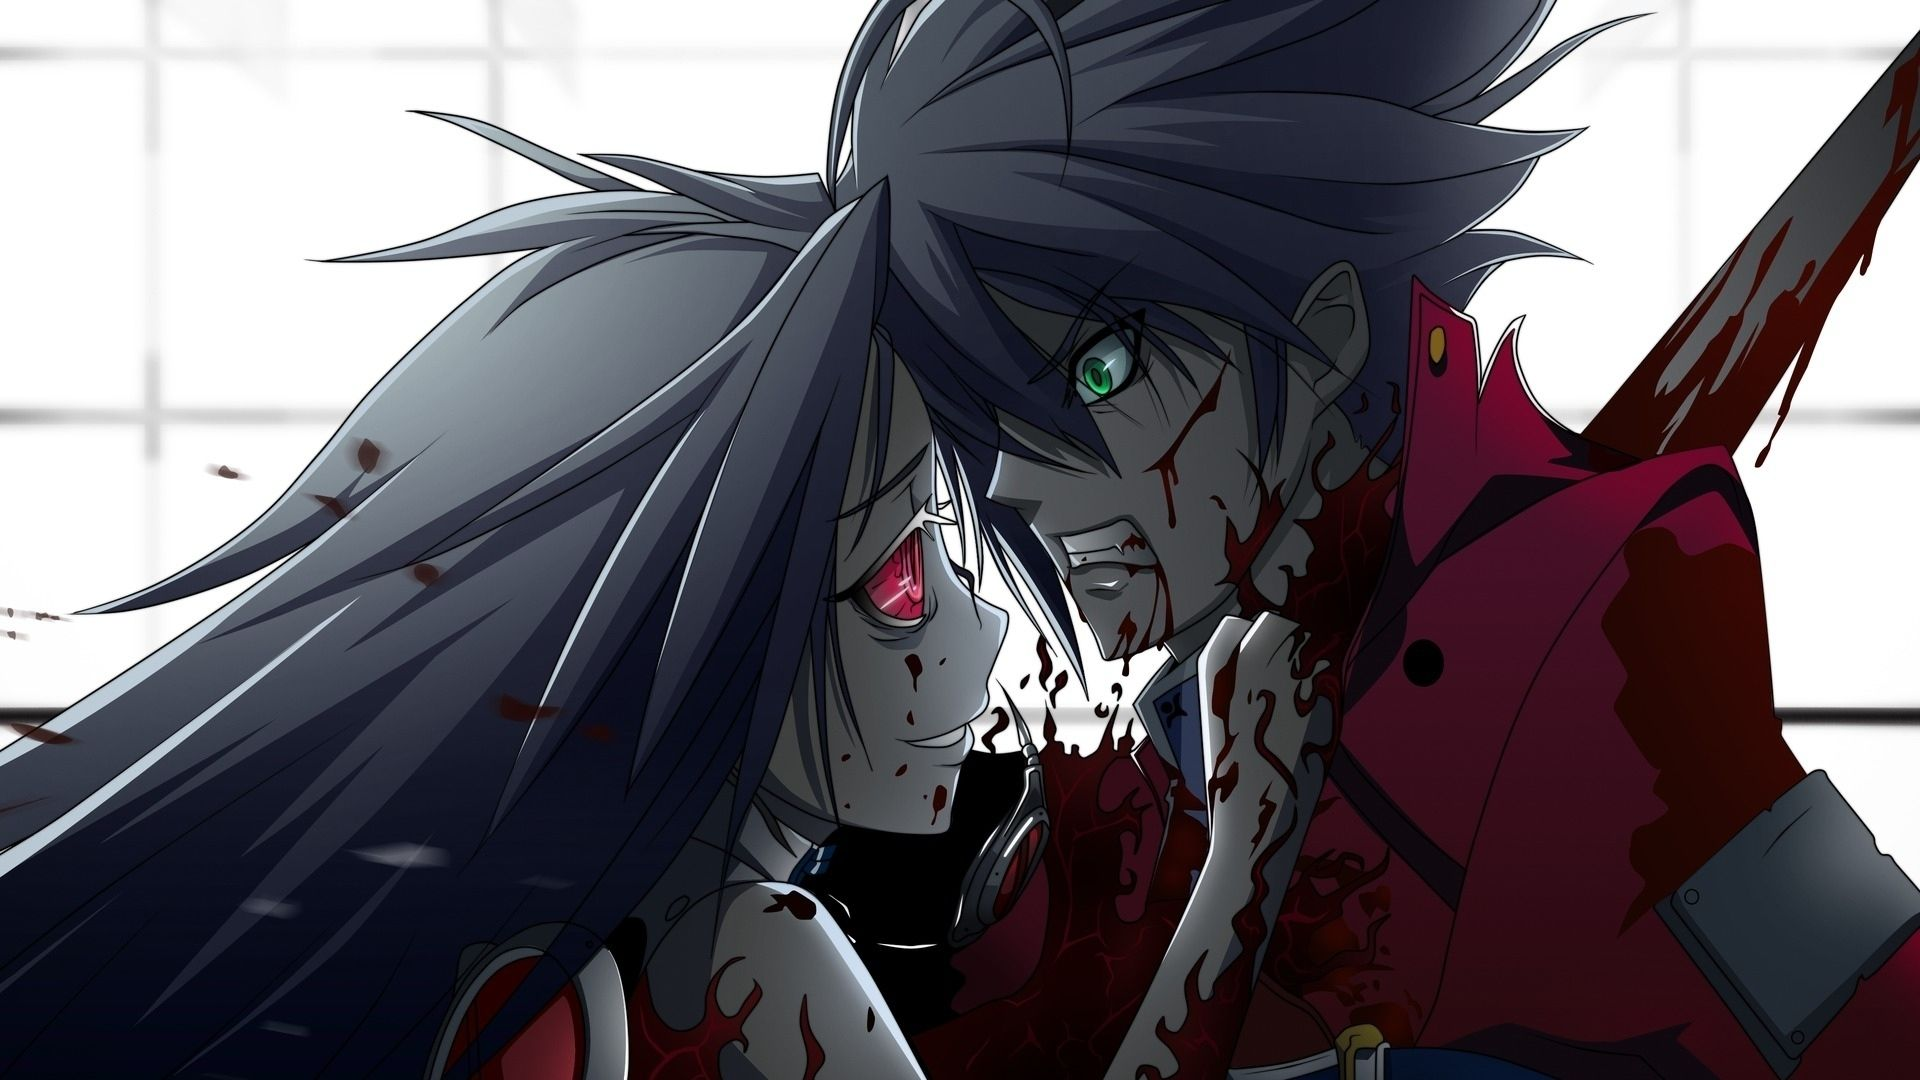 Cool Anime Wallpapers HD 1920x1080 3 | Cool Anime Wallpapers HD 1920×1080 | Pinterest ...